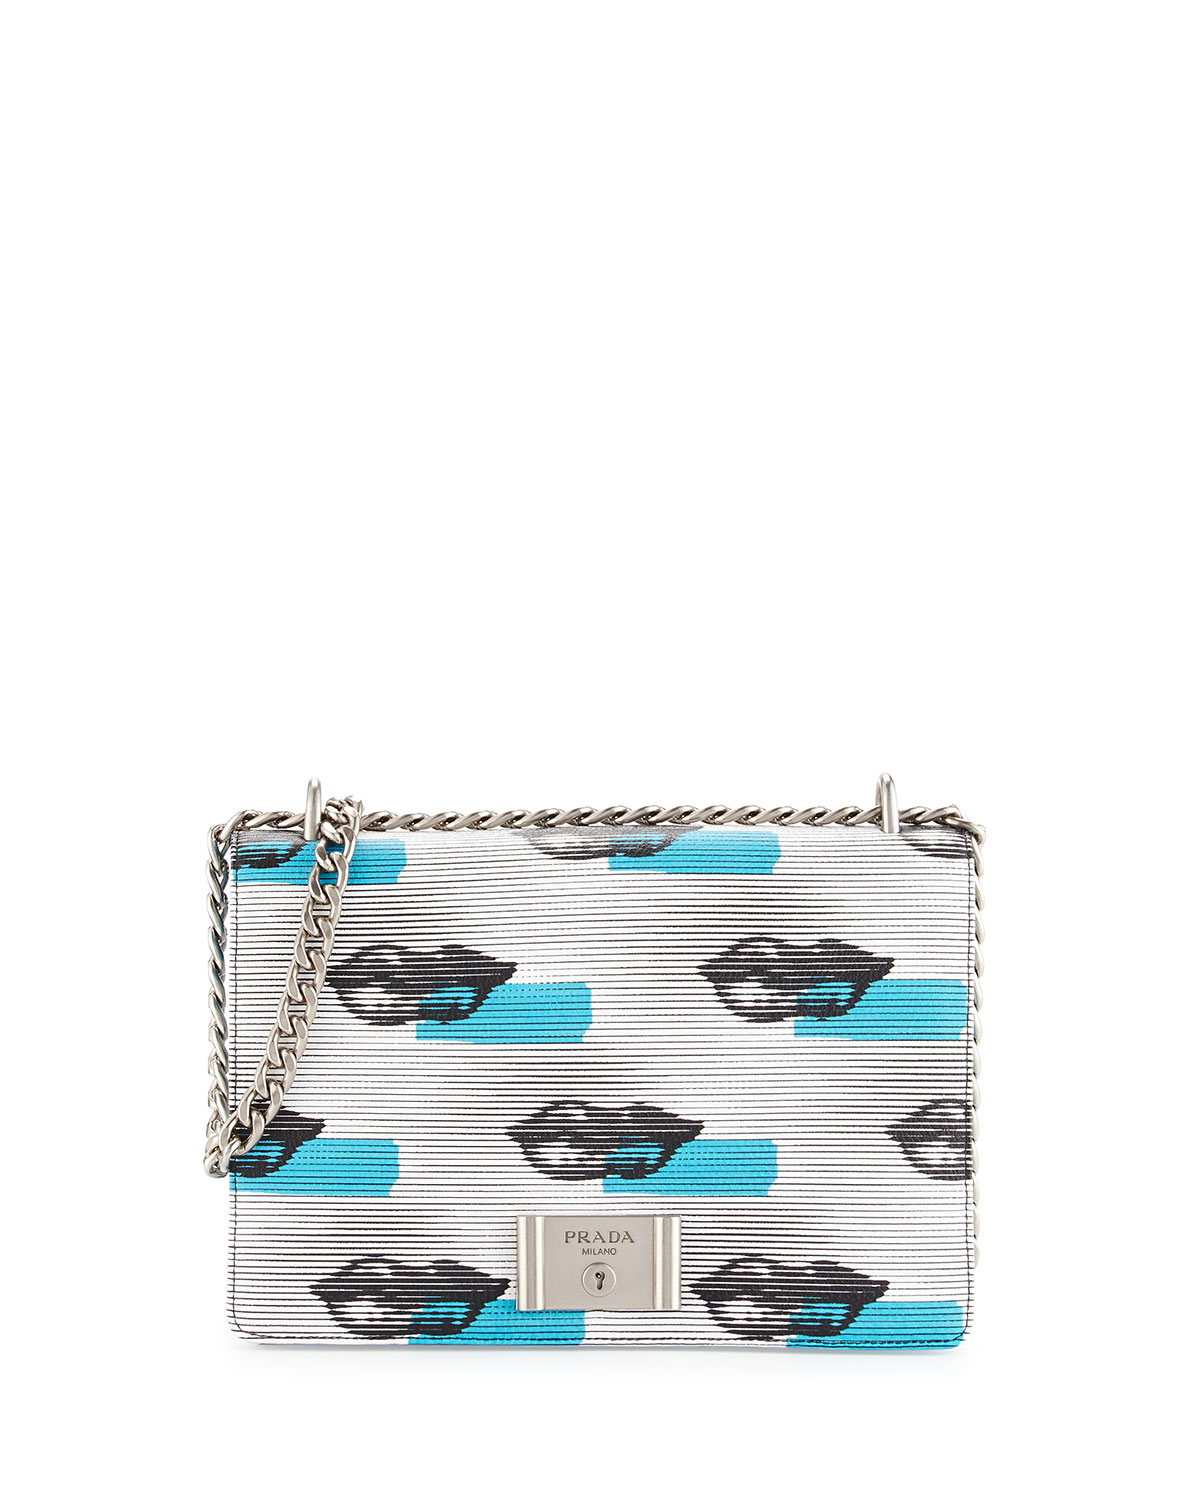 a637ad98fcaa promo code for prada vitello daino lips shoulder bag white blue  biancoazzuro neiman marcus c4c5d 39059